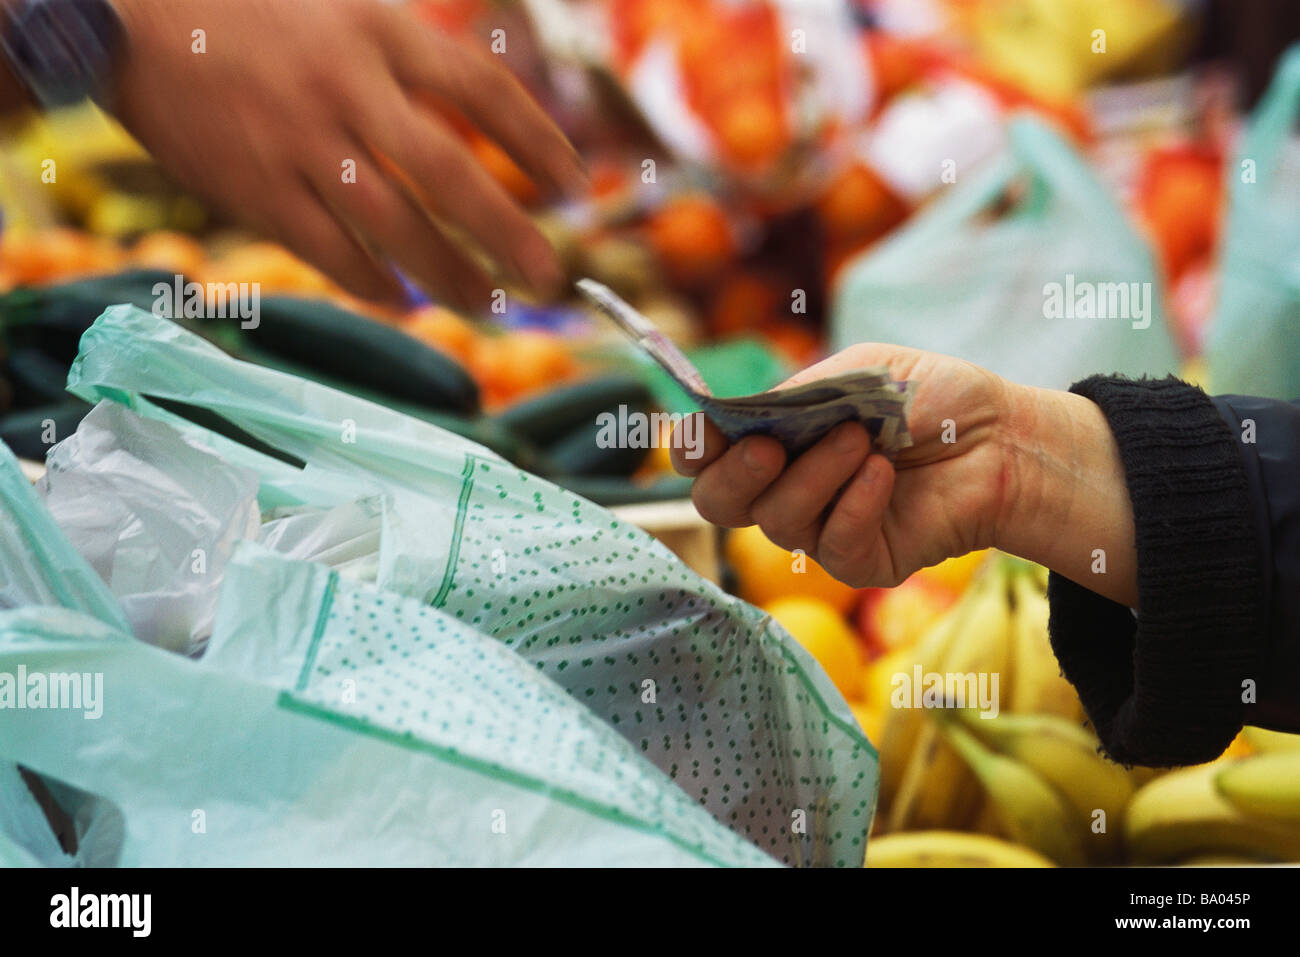 Person paying in market, cropped view - Stock Image